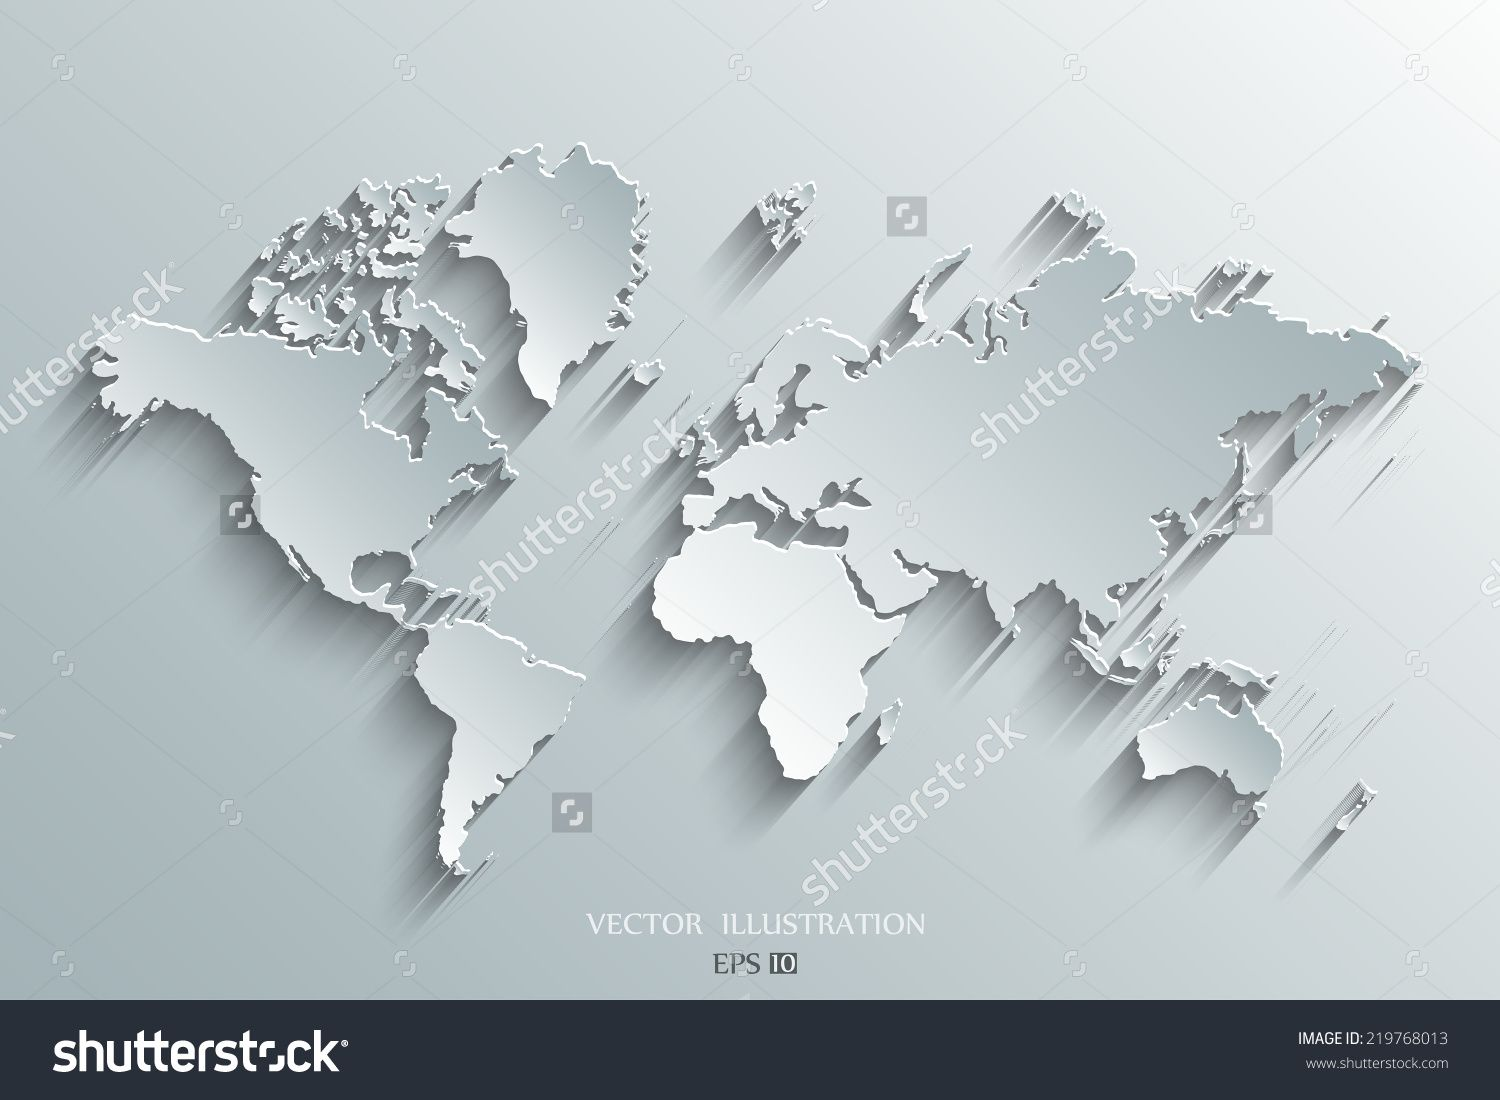 World map outline high resolution vector google search world map outline high resolution vector google search gumiabroncs Images